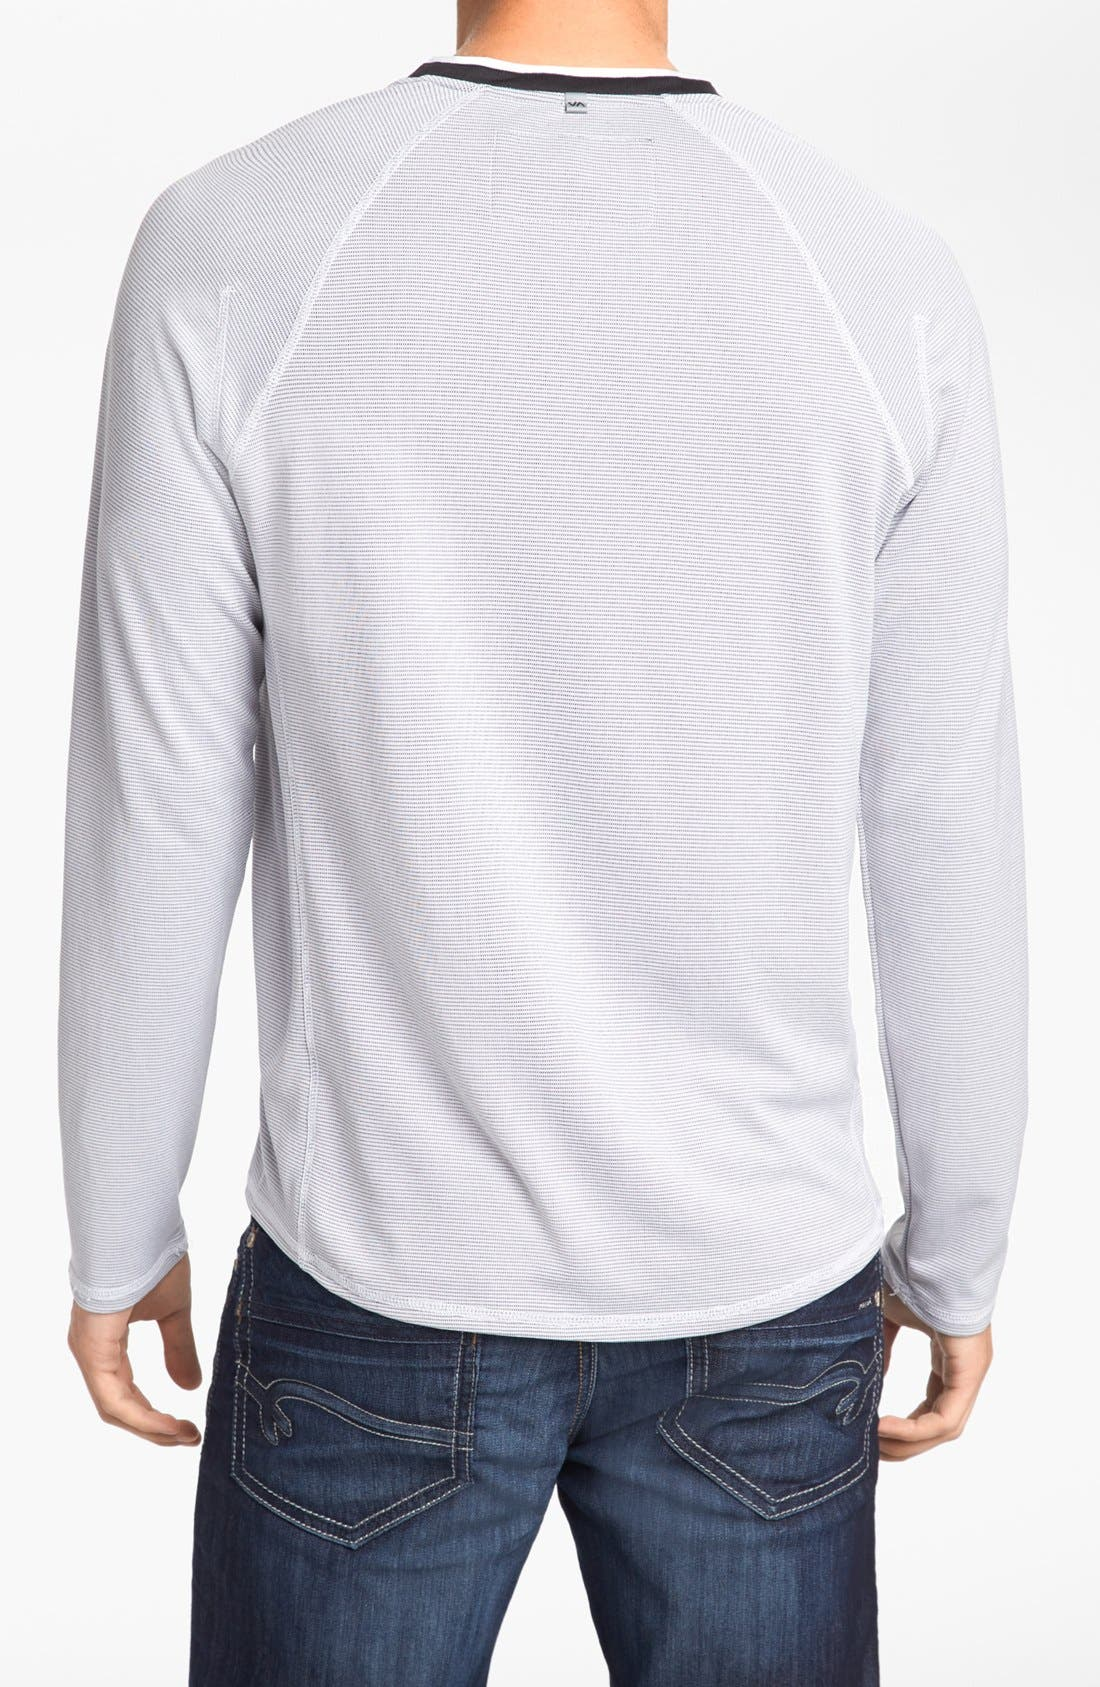 Alternate Image 2  - RVCA 'Fraction' Long Sleeve V-Neck T-Shirt